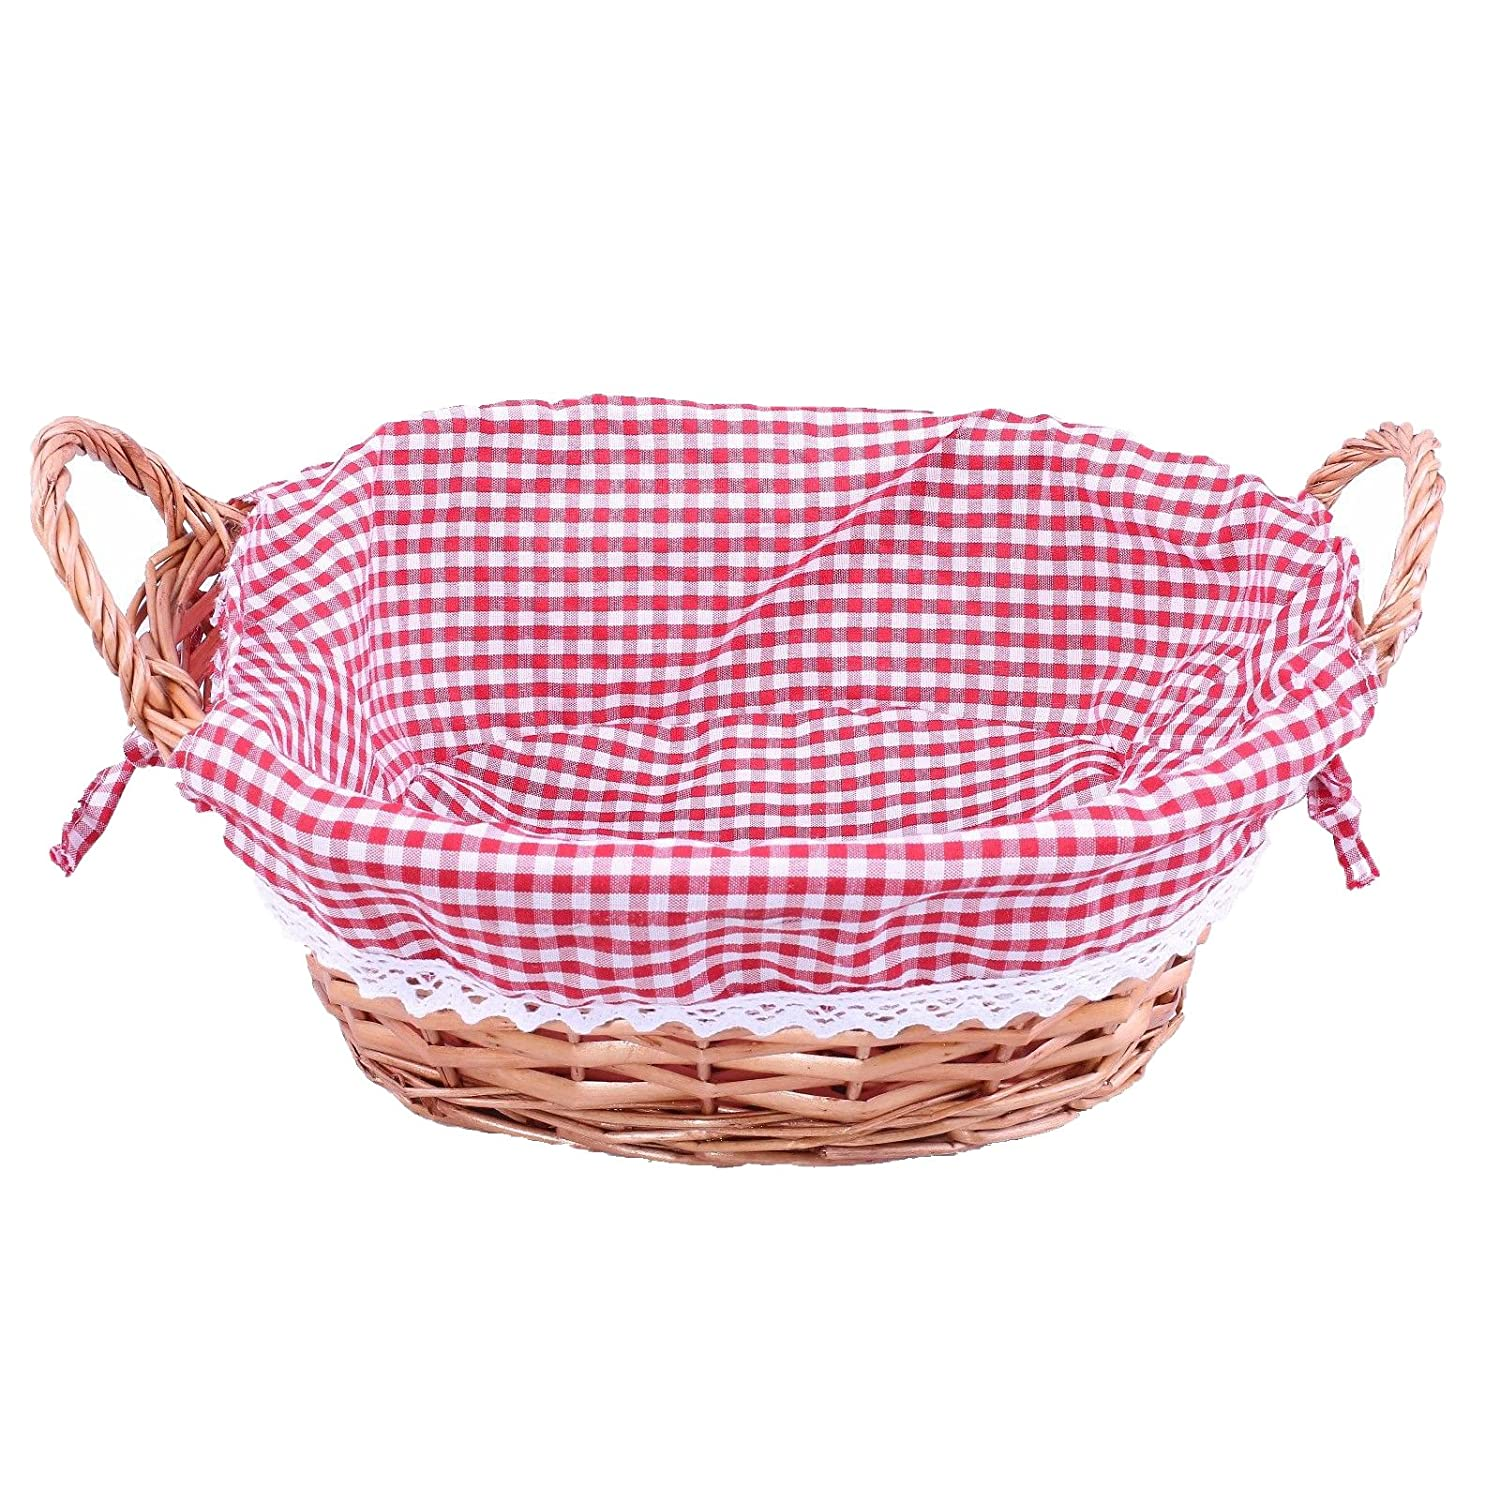 Basic House Ltd Traditional Bread Wicker Basket Gift Hampers Collection Storage Display Red Line (1 pcs)